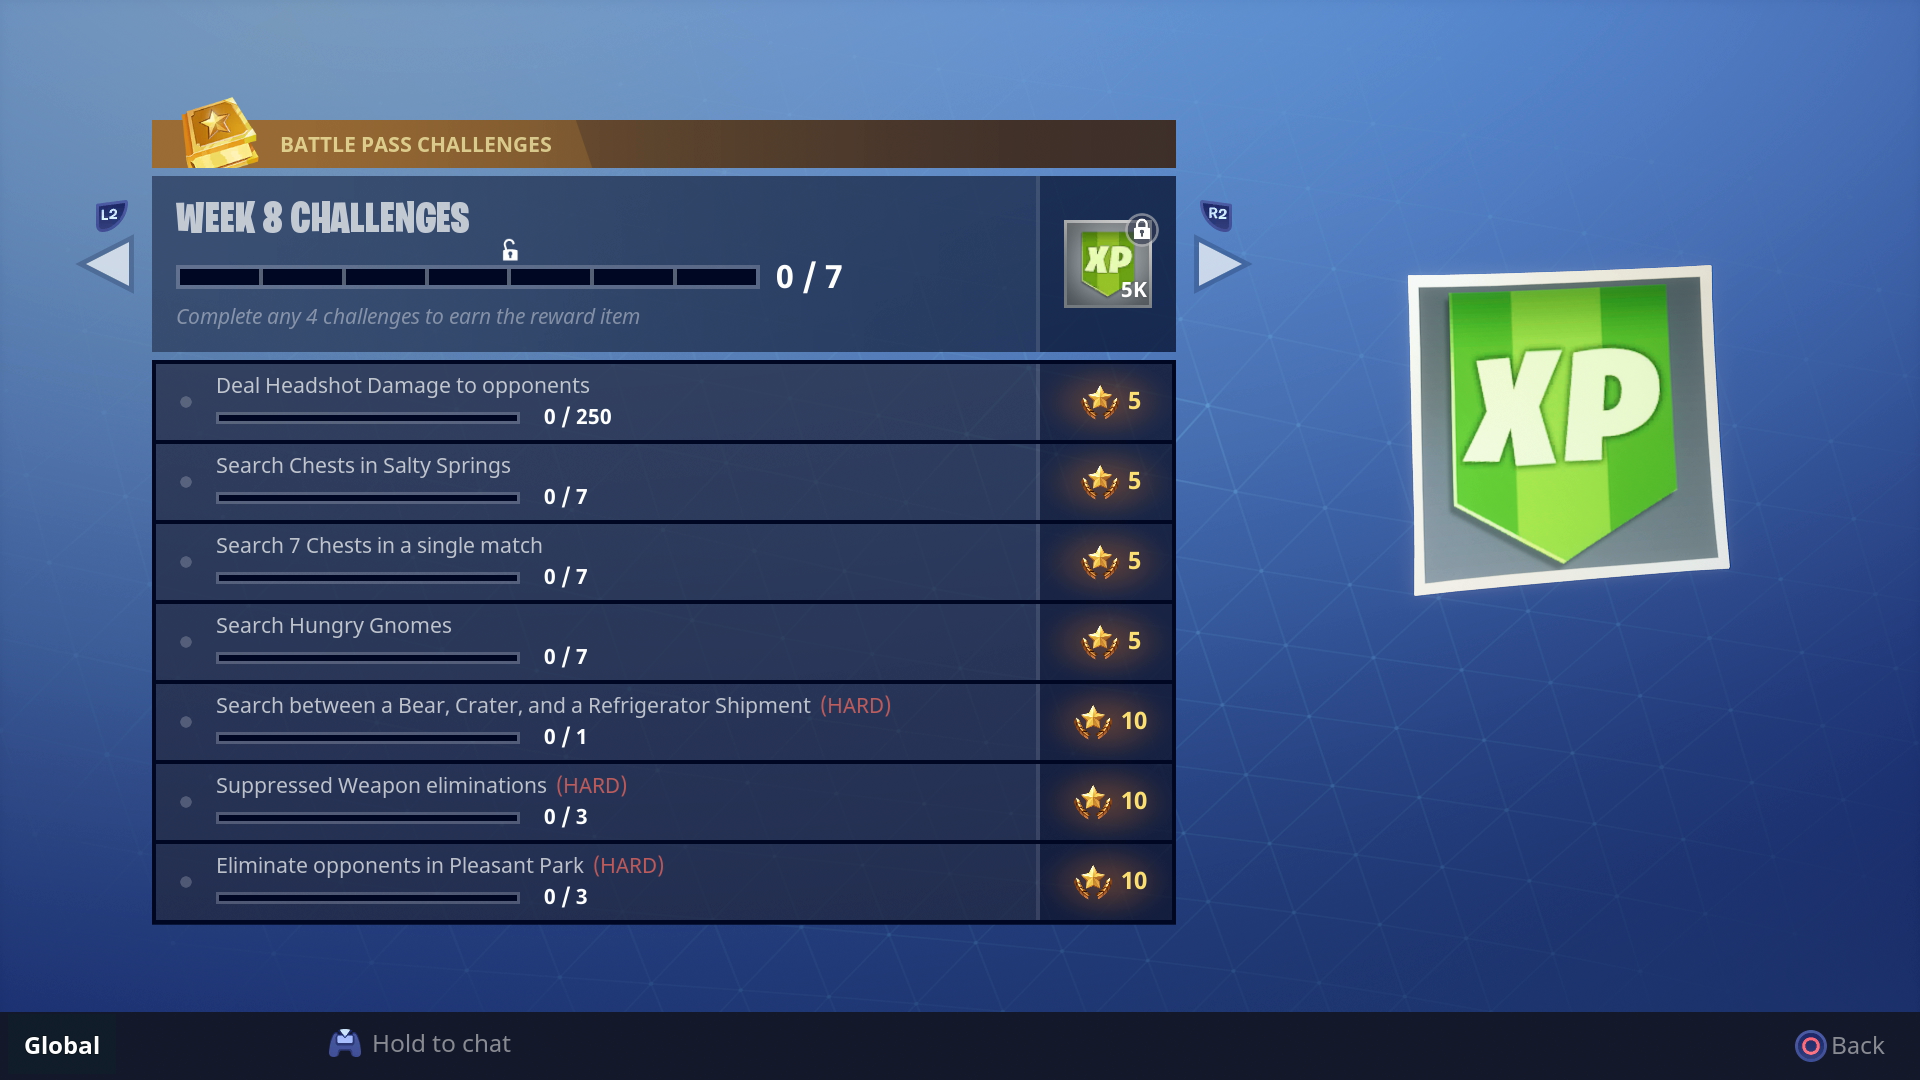 ... To Complete All Seven Challenges For The Week, So You Can Work Your Way  Closer To Both The Hidden Challenge And The Blockbuster Challenge For The  Week.